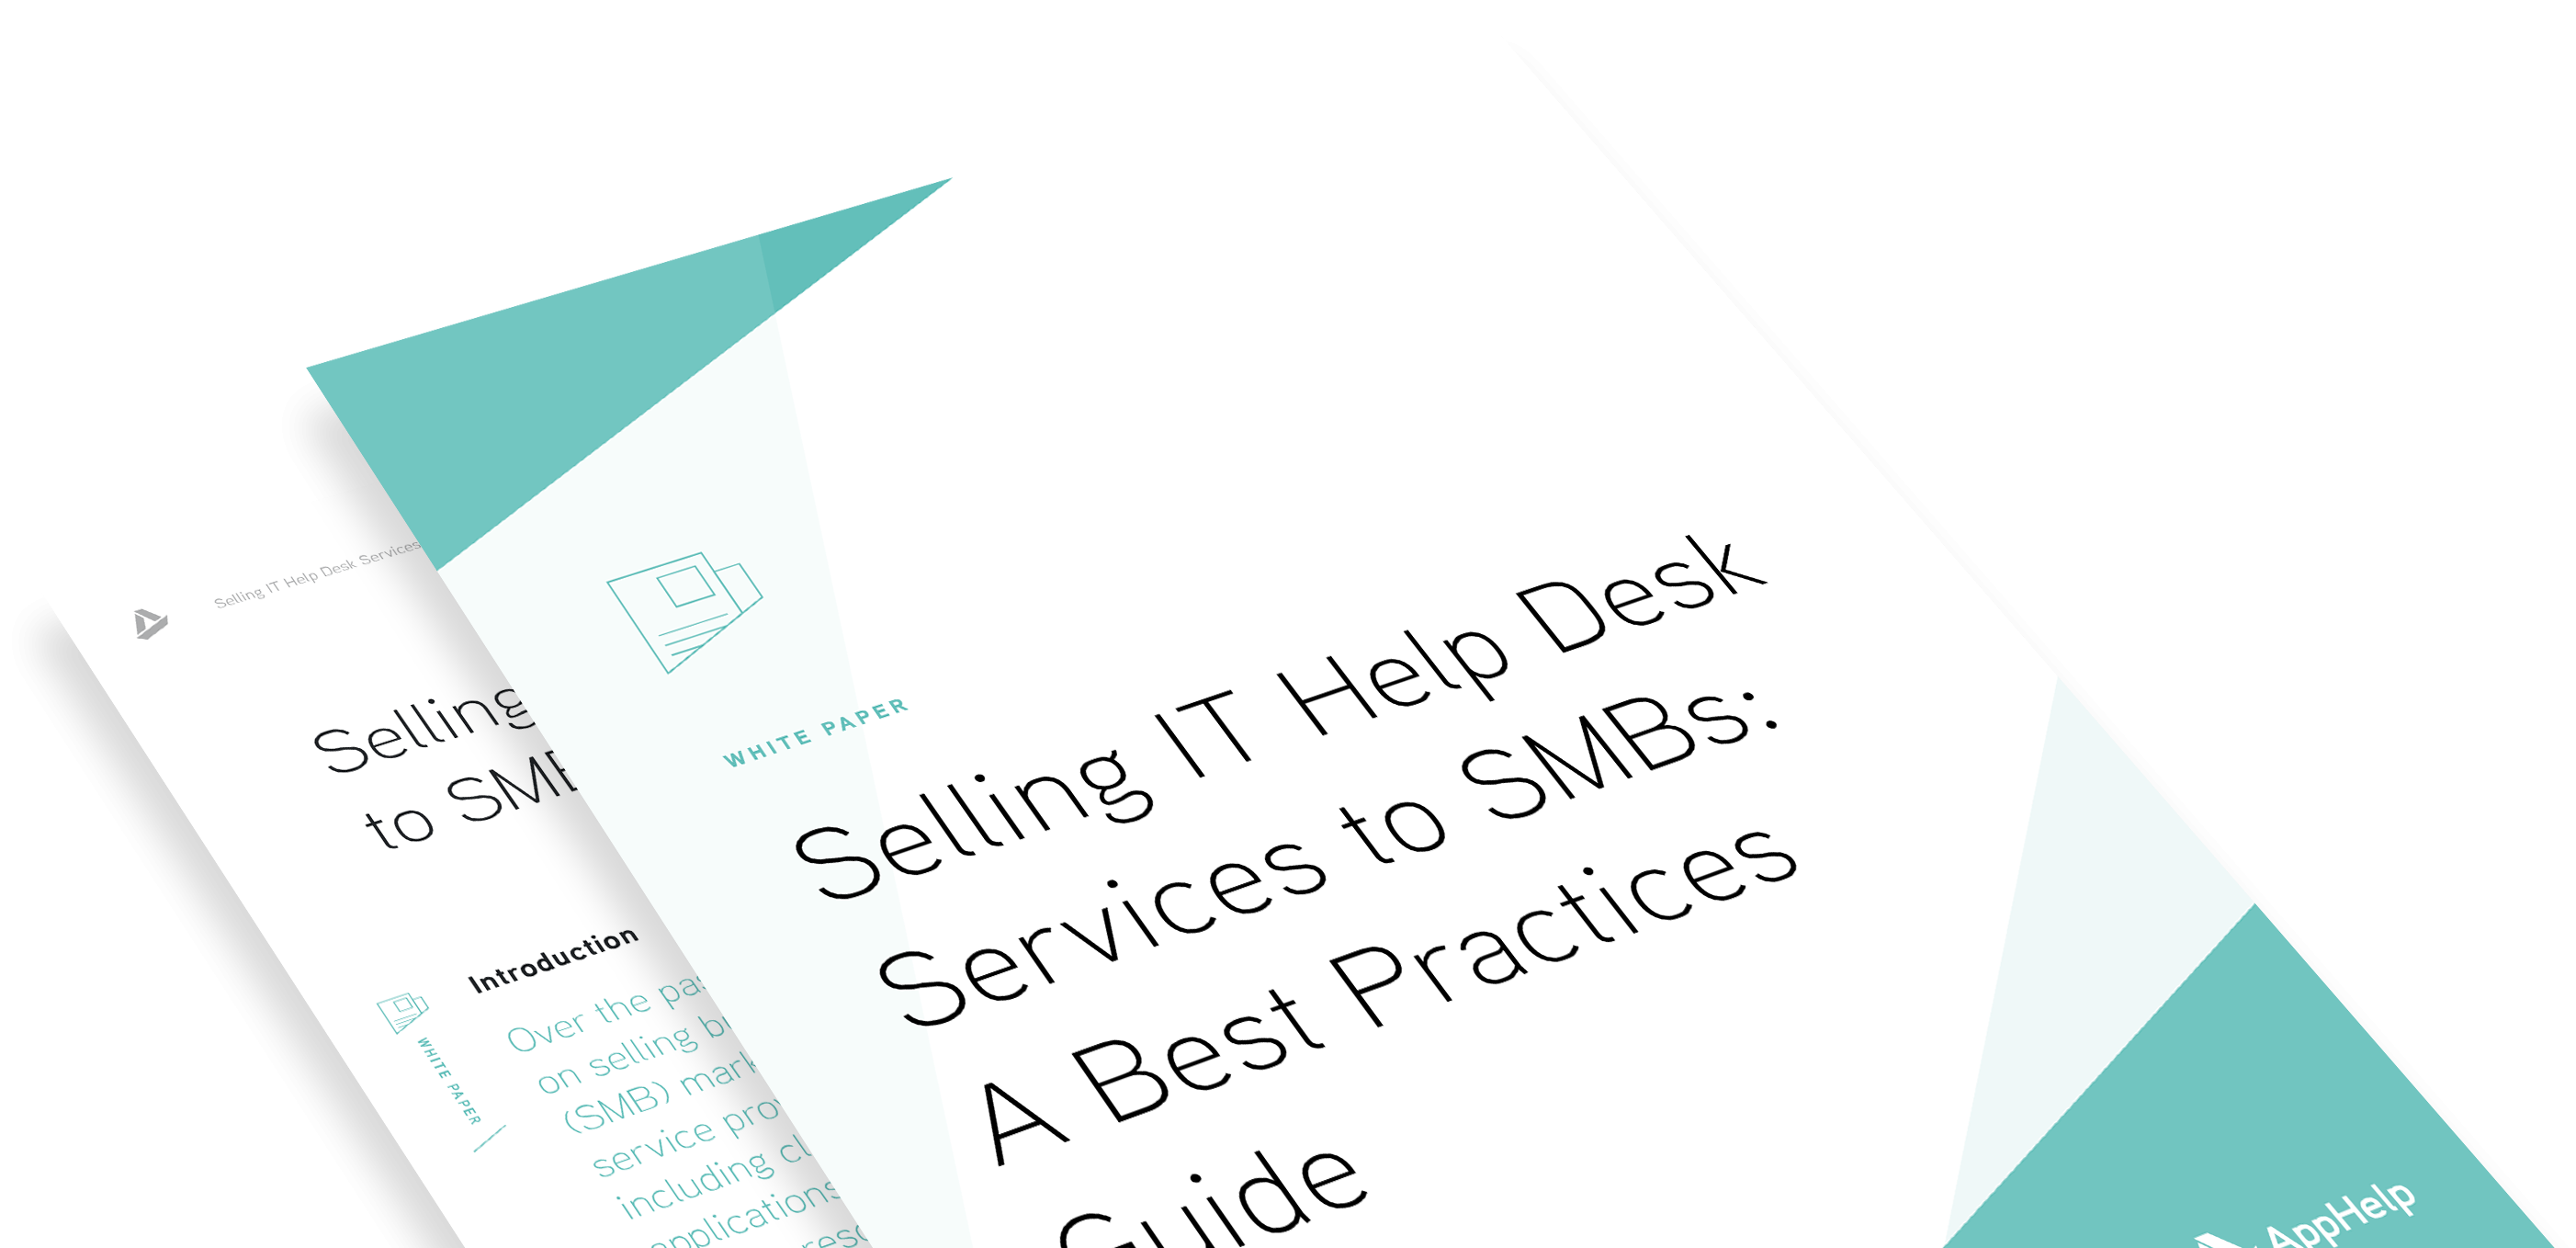 Selling IT Help Desk Services to SMBs: A Best Practices Guide